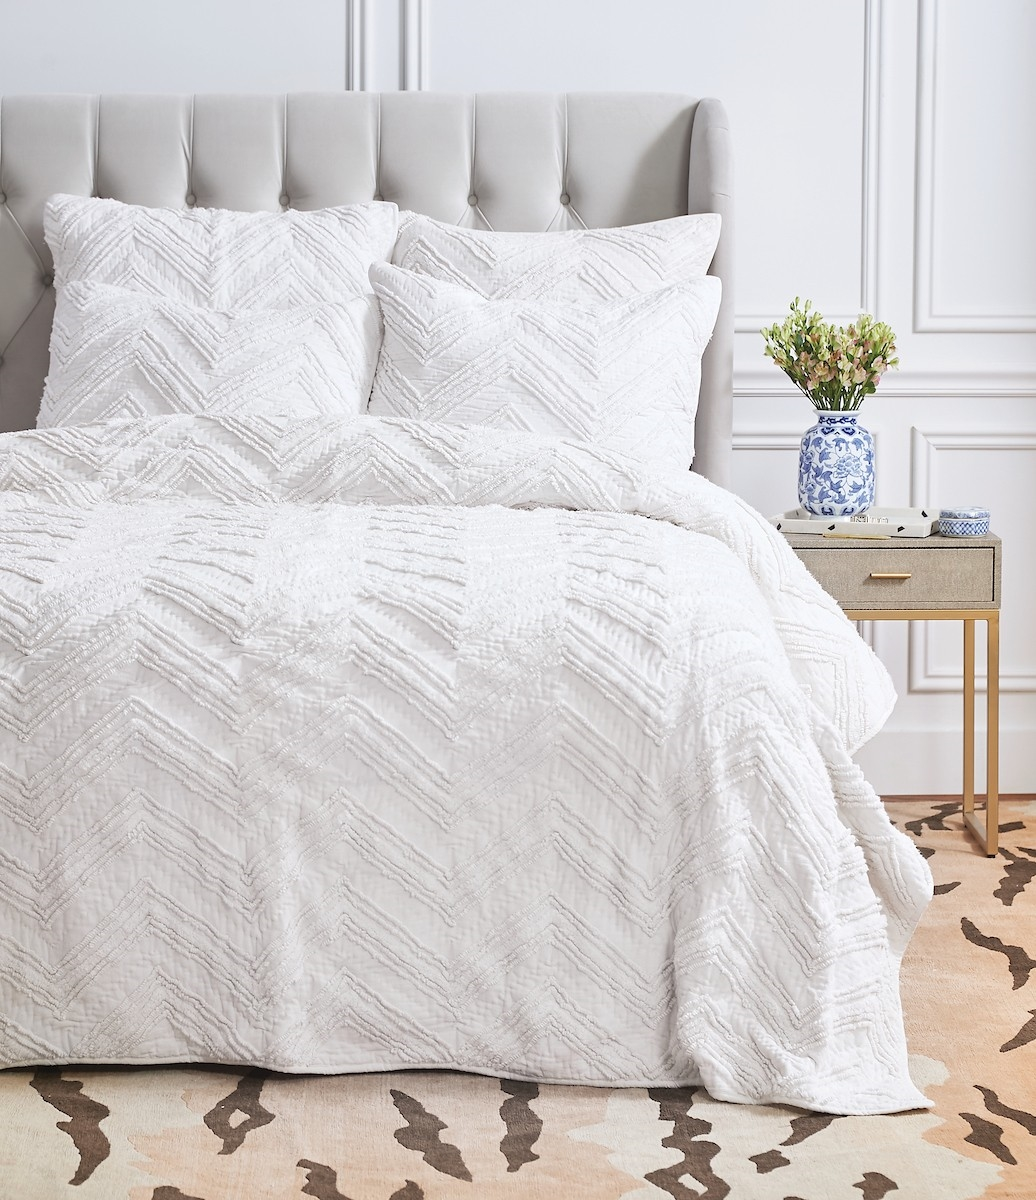 Candlewick Dove Queen Quilt,ELISABETH YORK,Hand Crafted,Luxury,Chenille,Candlewick,Pickstitch,Chevron,Texture,Bedding,Luxury Bedding,Quilt,Luxury Quilt